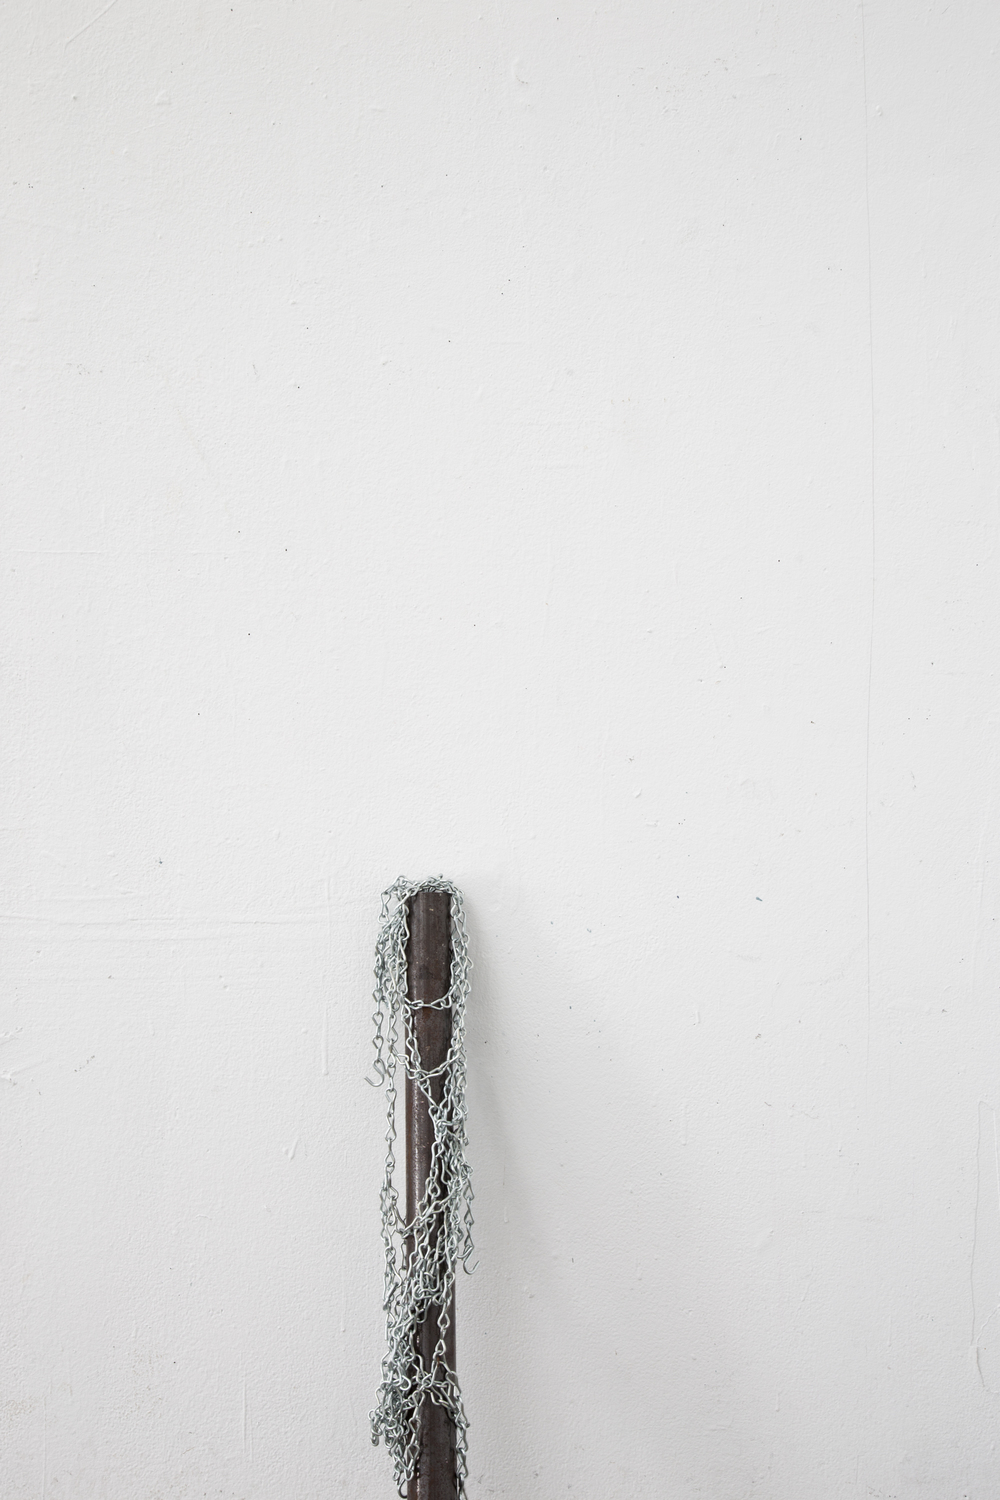 Aluminum Pole and Metal Basketball Net, 2016